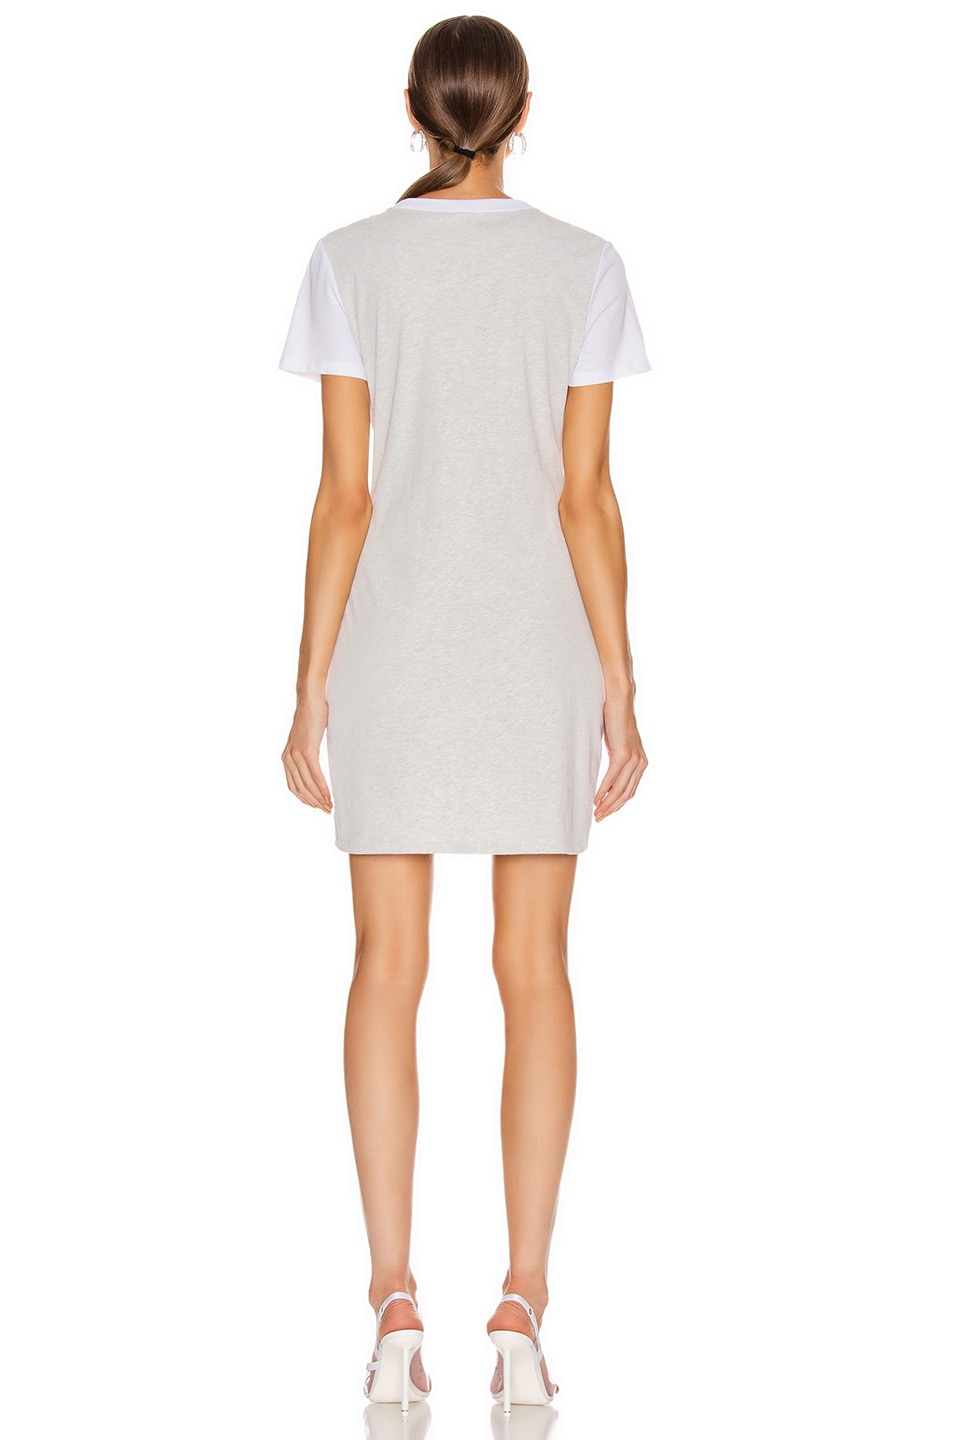 Image 3 of T by Alexander Wang High Twist Knot Dress in White & Light Heather Grey